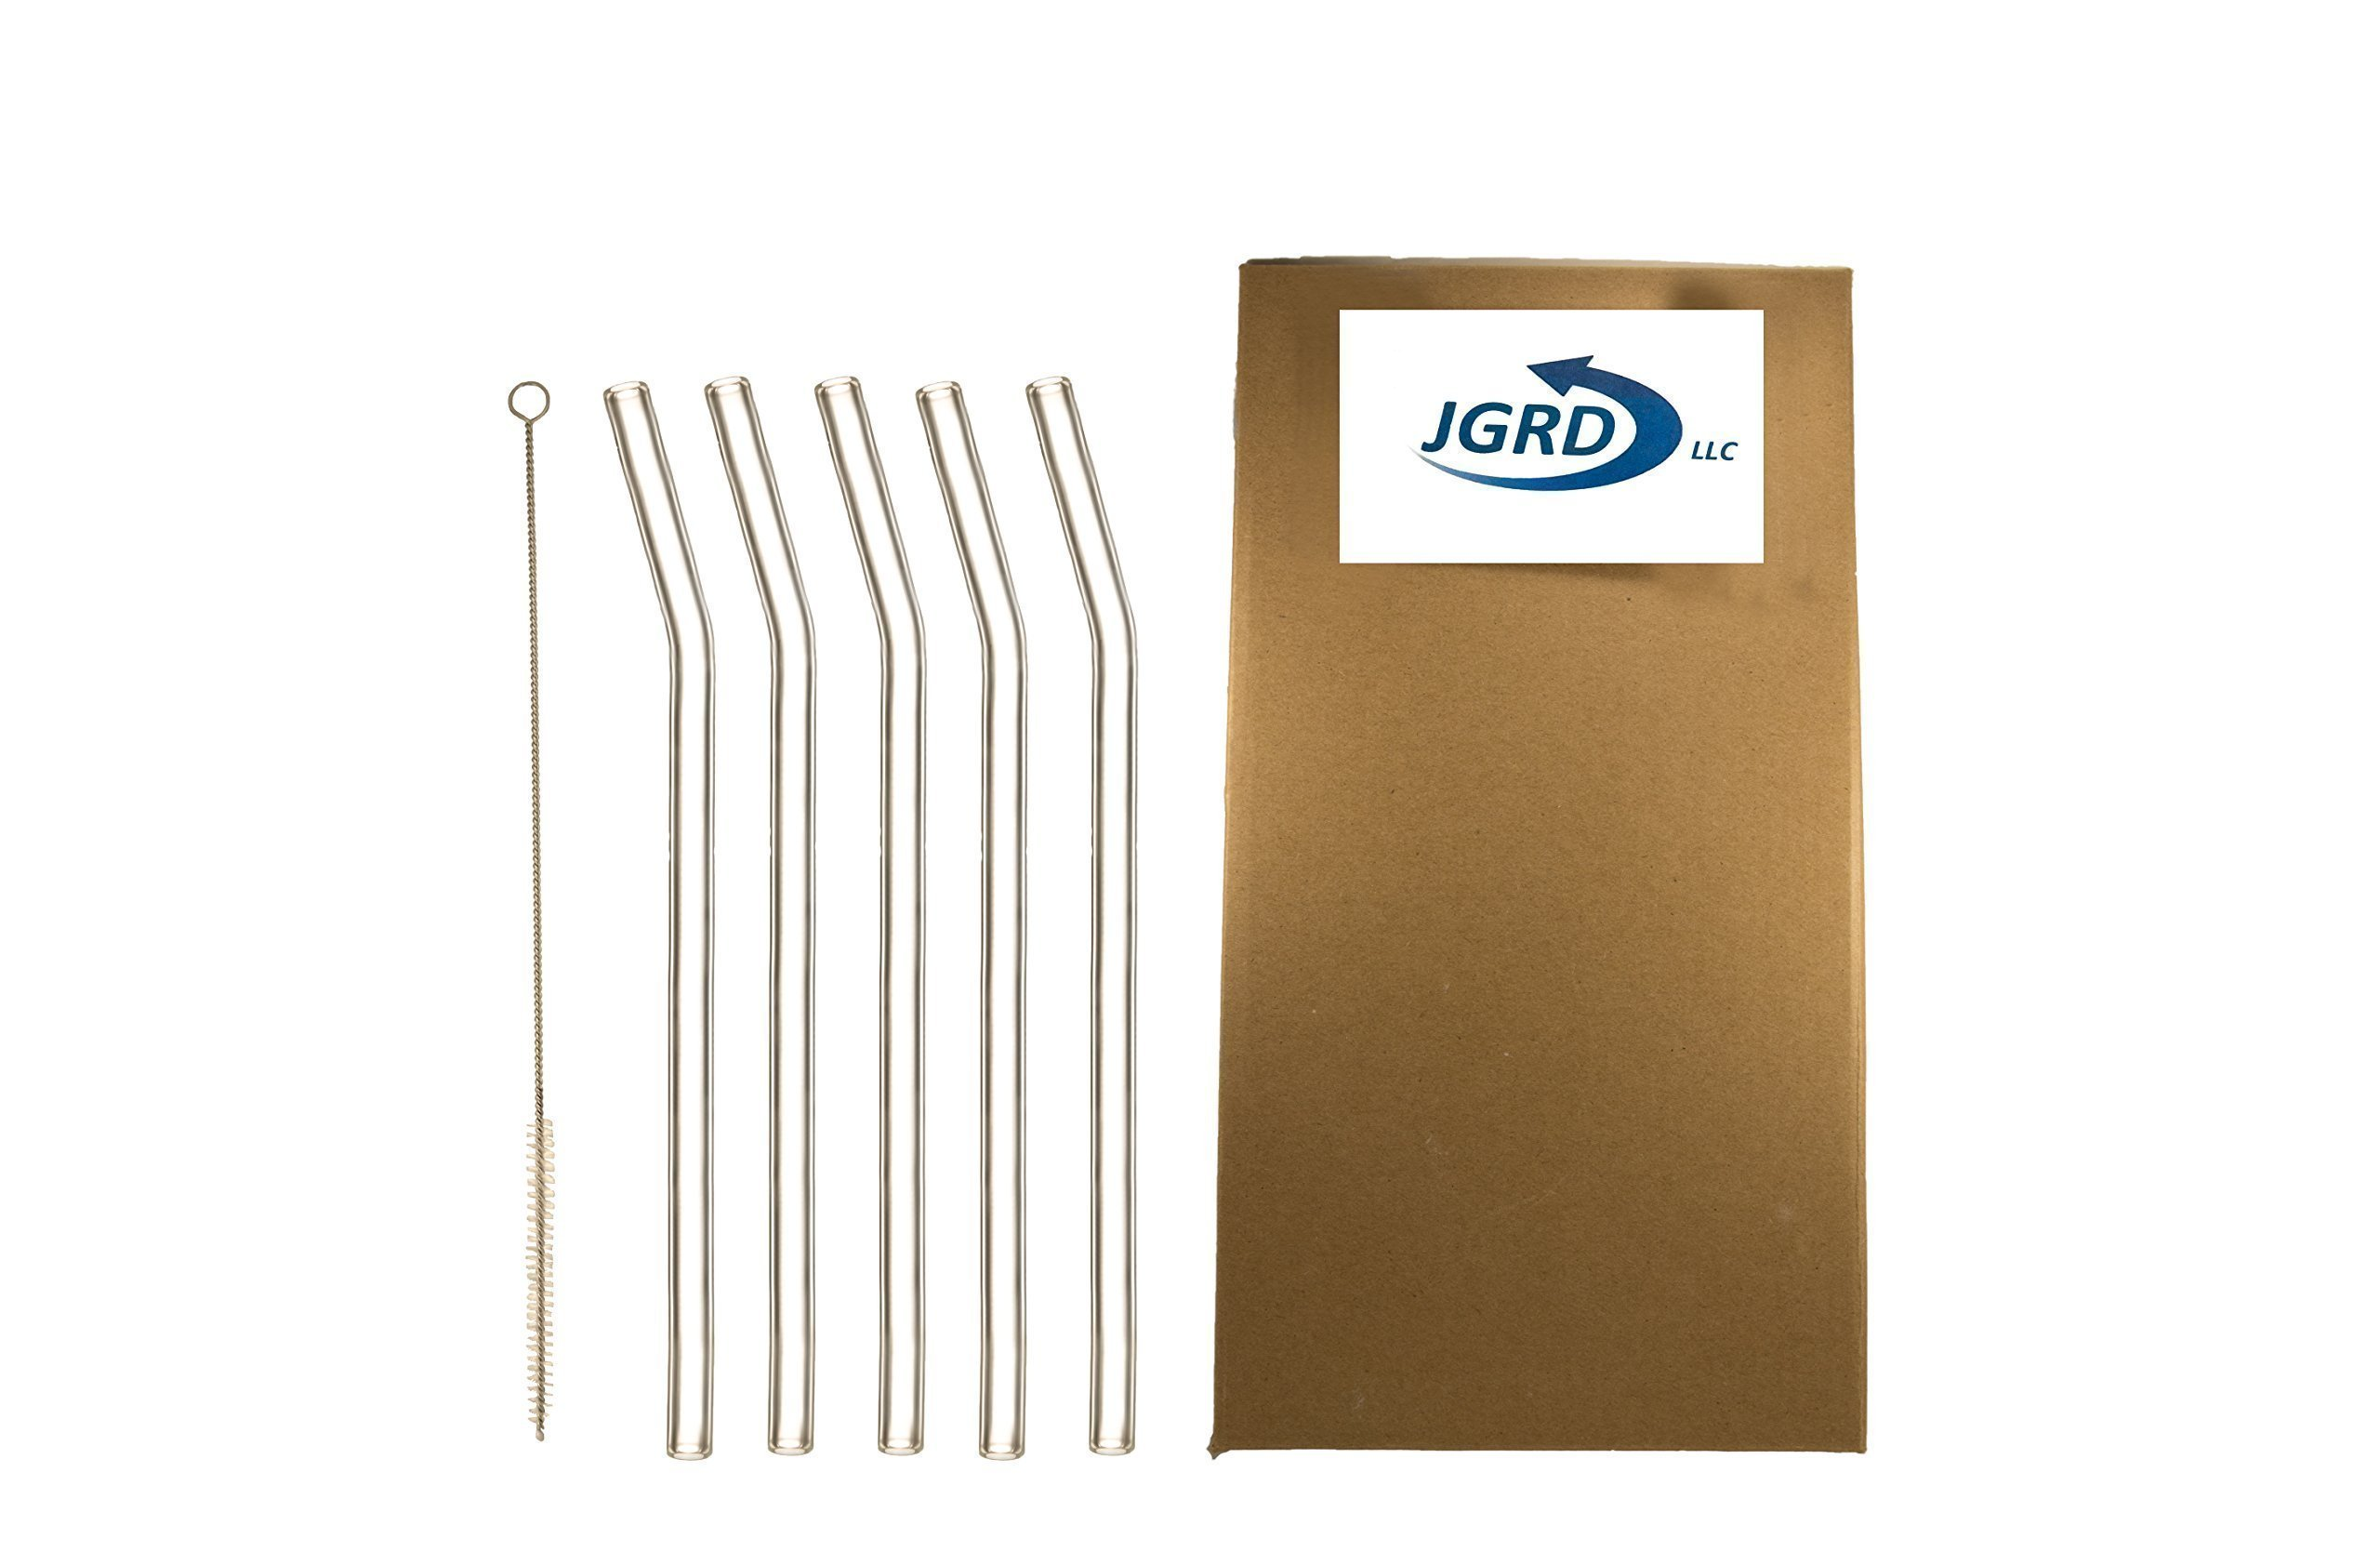 Drinking Straws Glass by JGRD, Reusable Durable Premium, Bent with Cleaning Brush, 9'' X 10mm, 5 Pack, Great Durable Reusable Straw, Perfect For Smoothies, Tea, Juice, Water, Essential Oils,